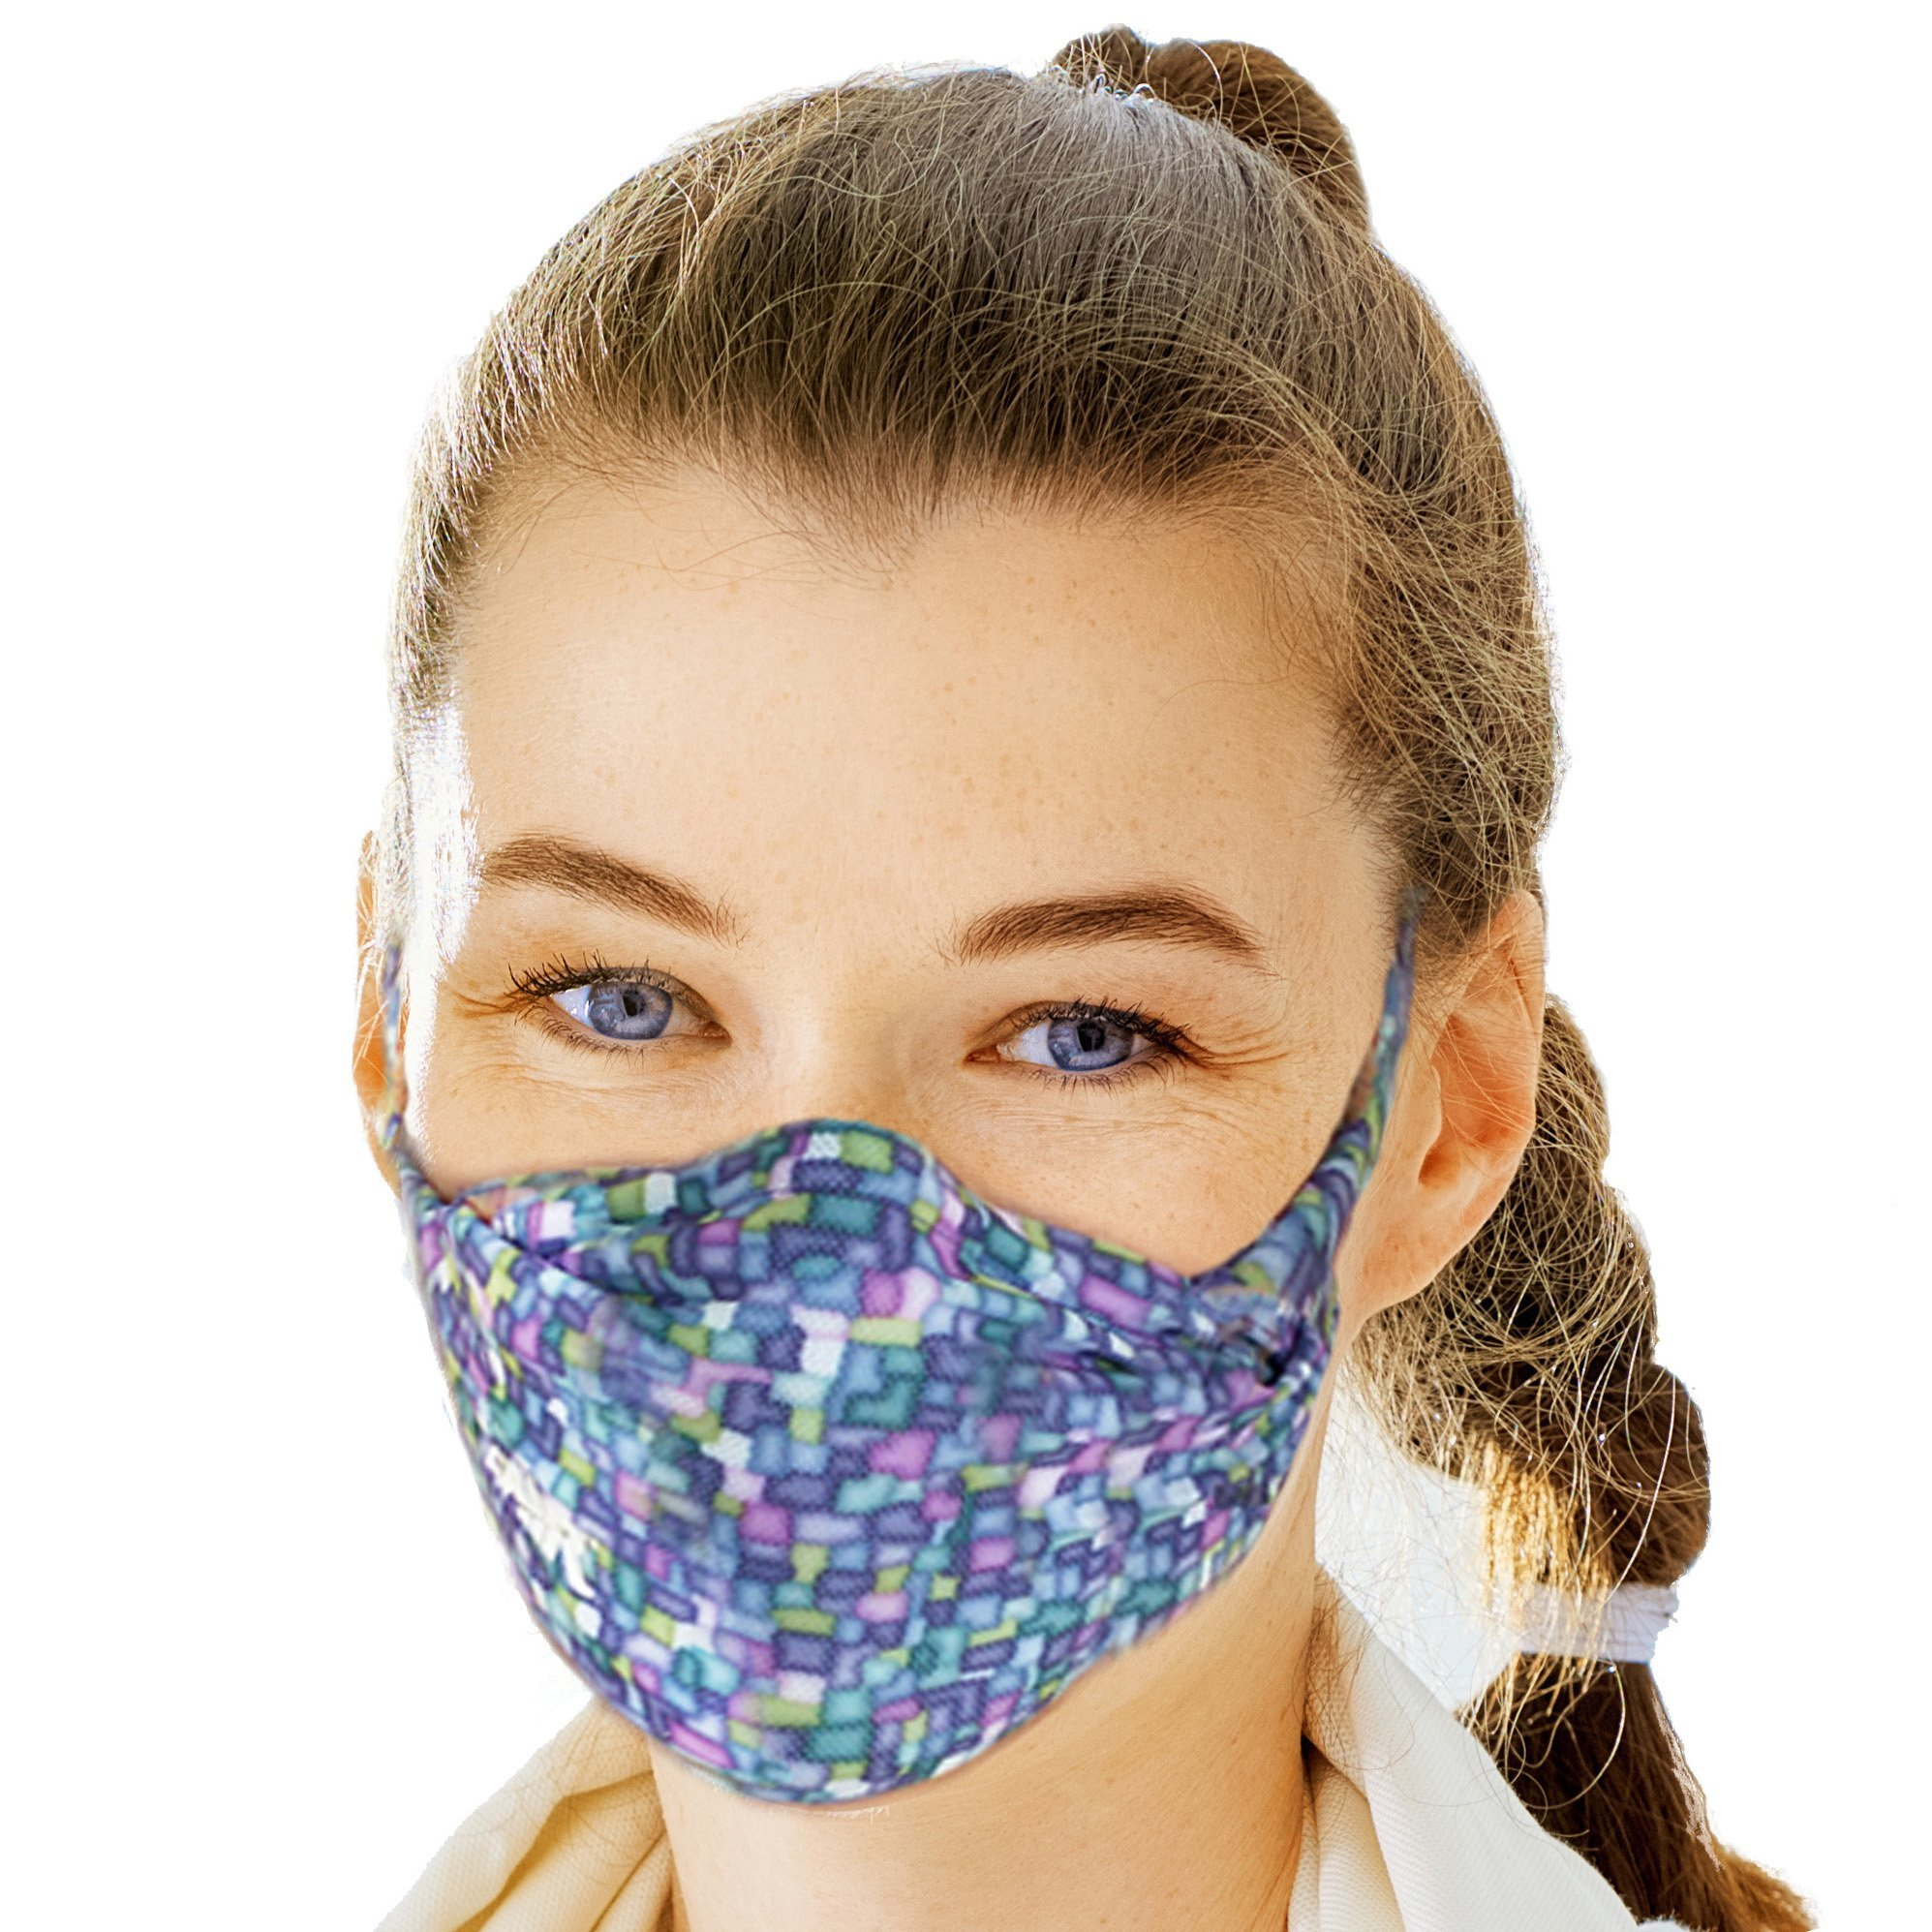 MyAir Comfort Mask, Starter Kit in Mosaic Tile - Made in USA. by MyAir